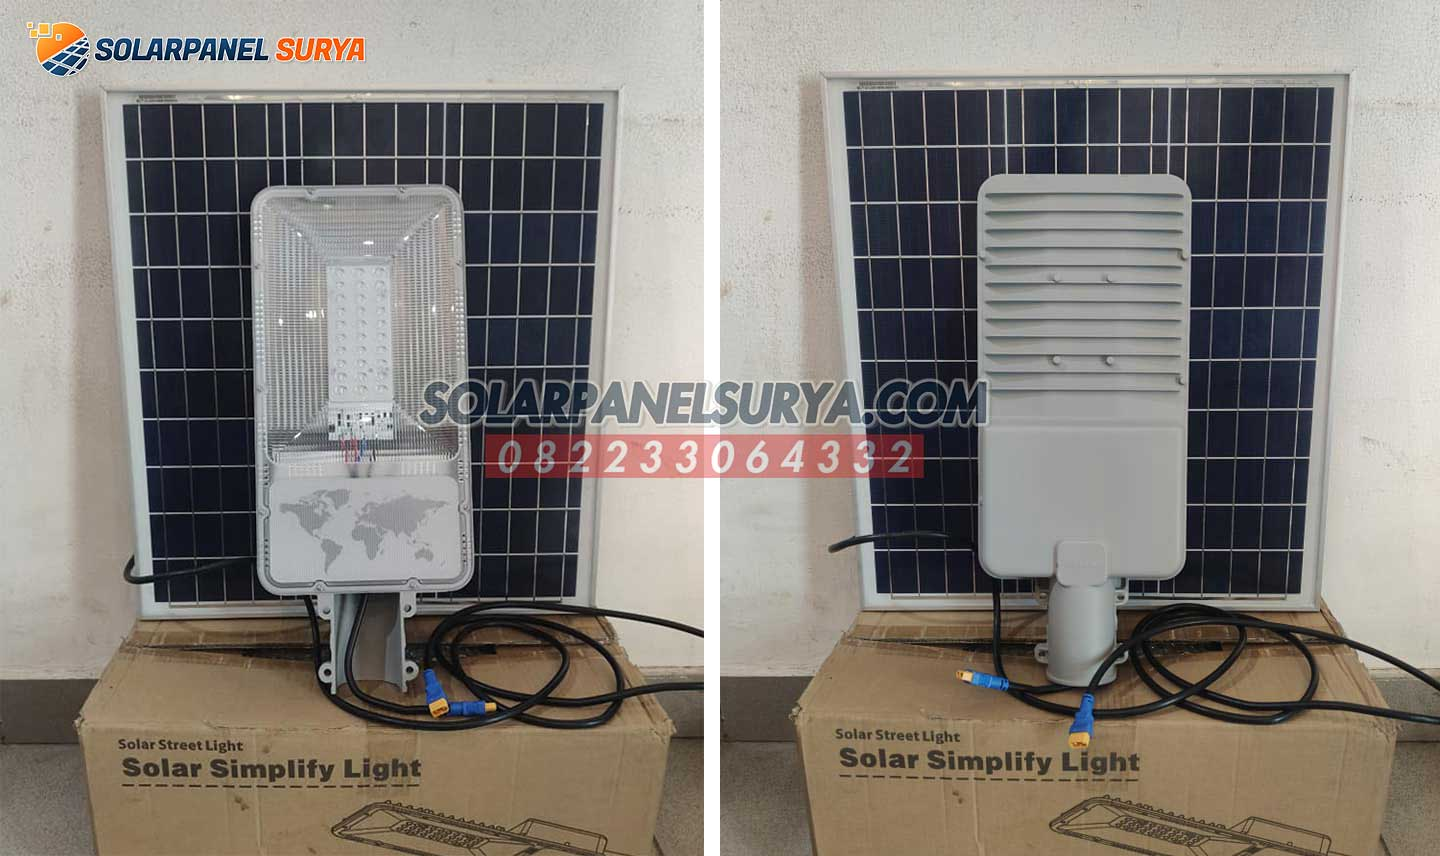 jual PJU Solar Cell 2 in 1 20 Watt Simplify Light murah bergaransi